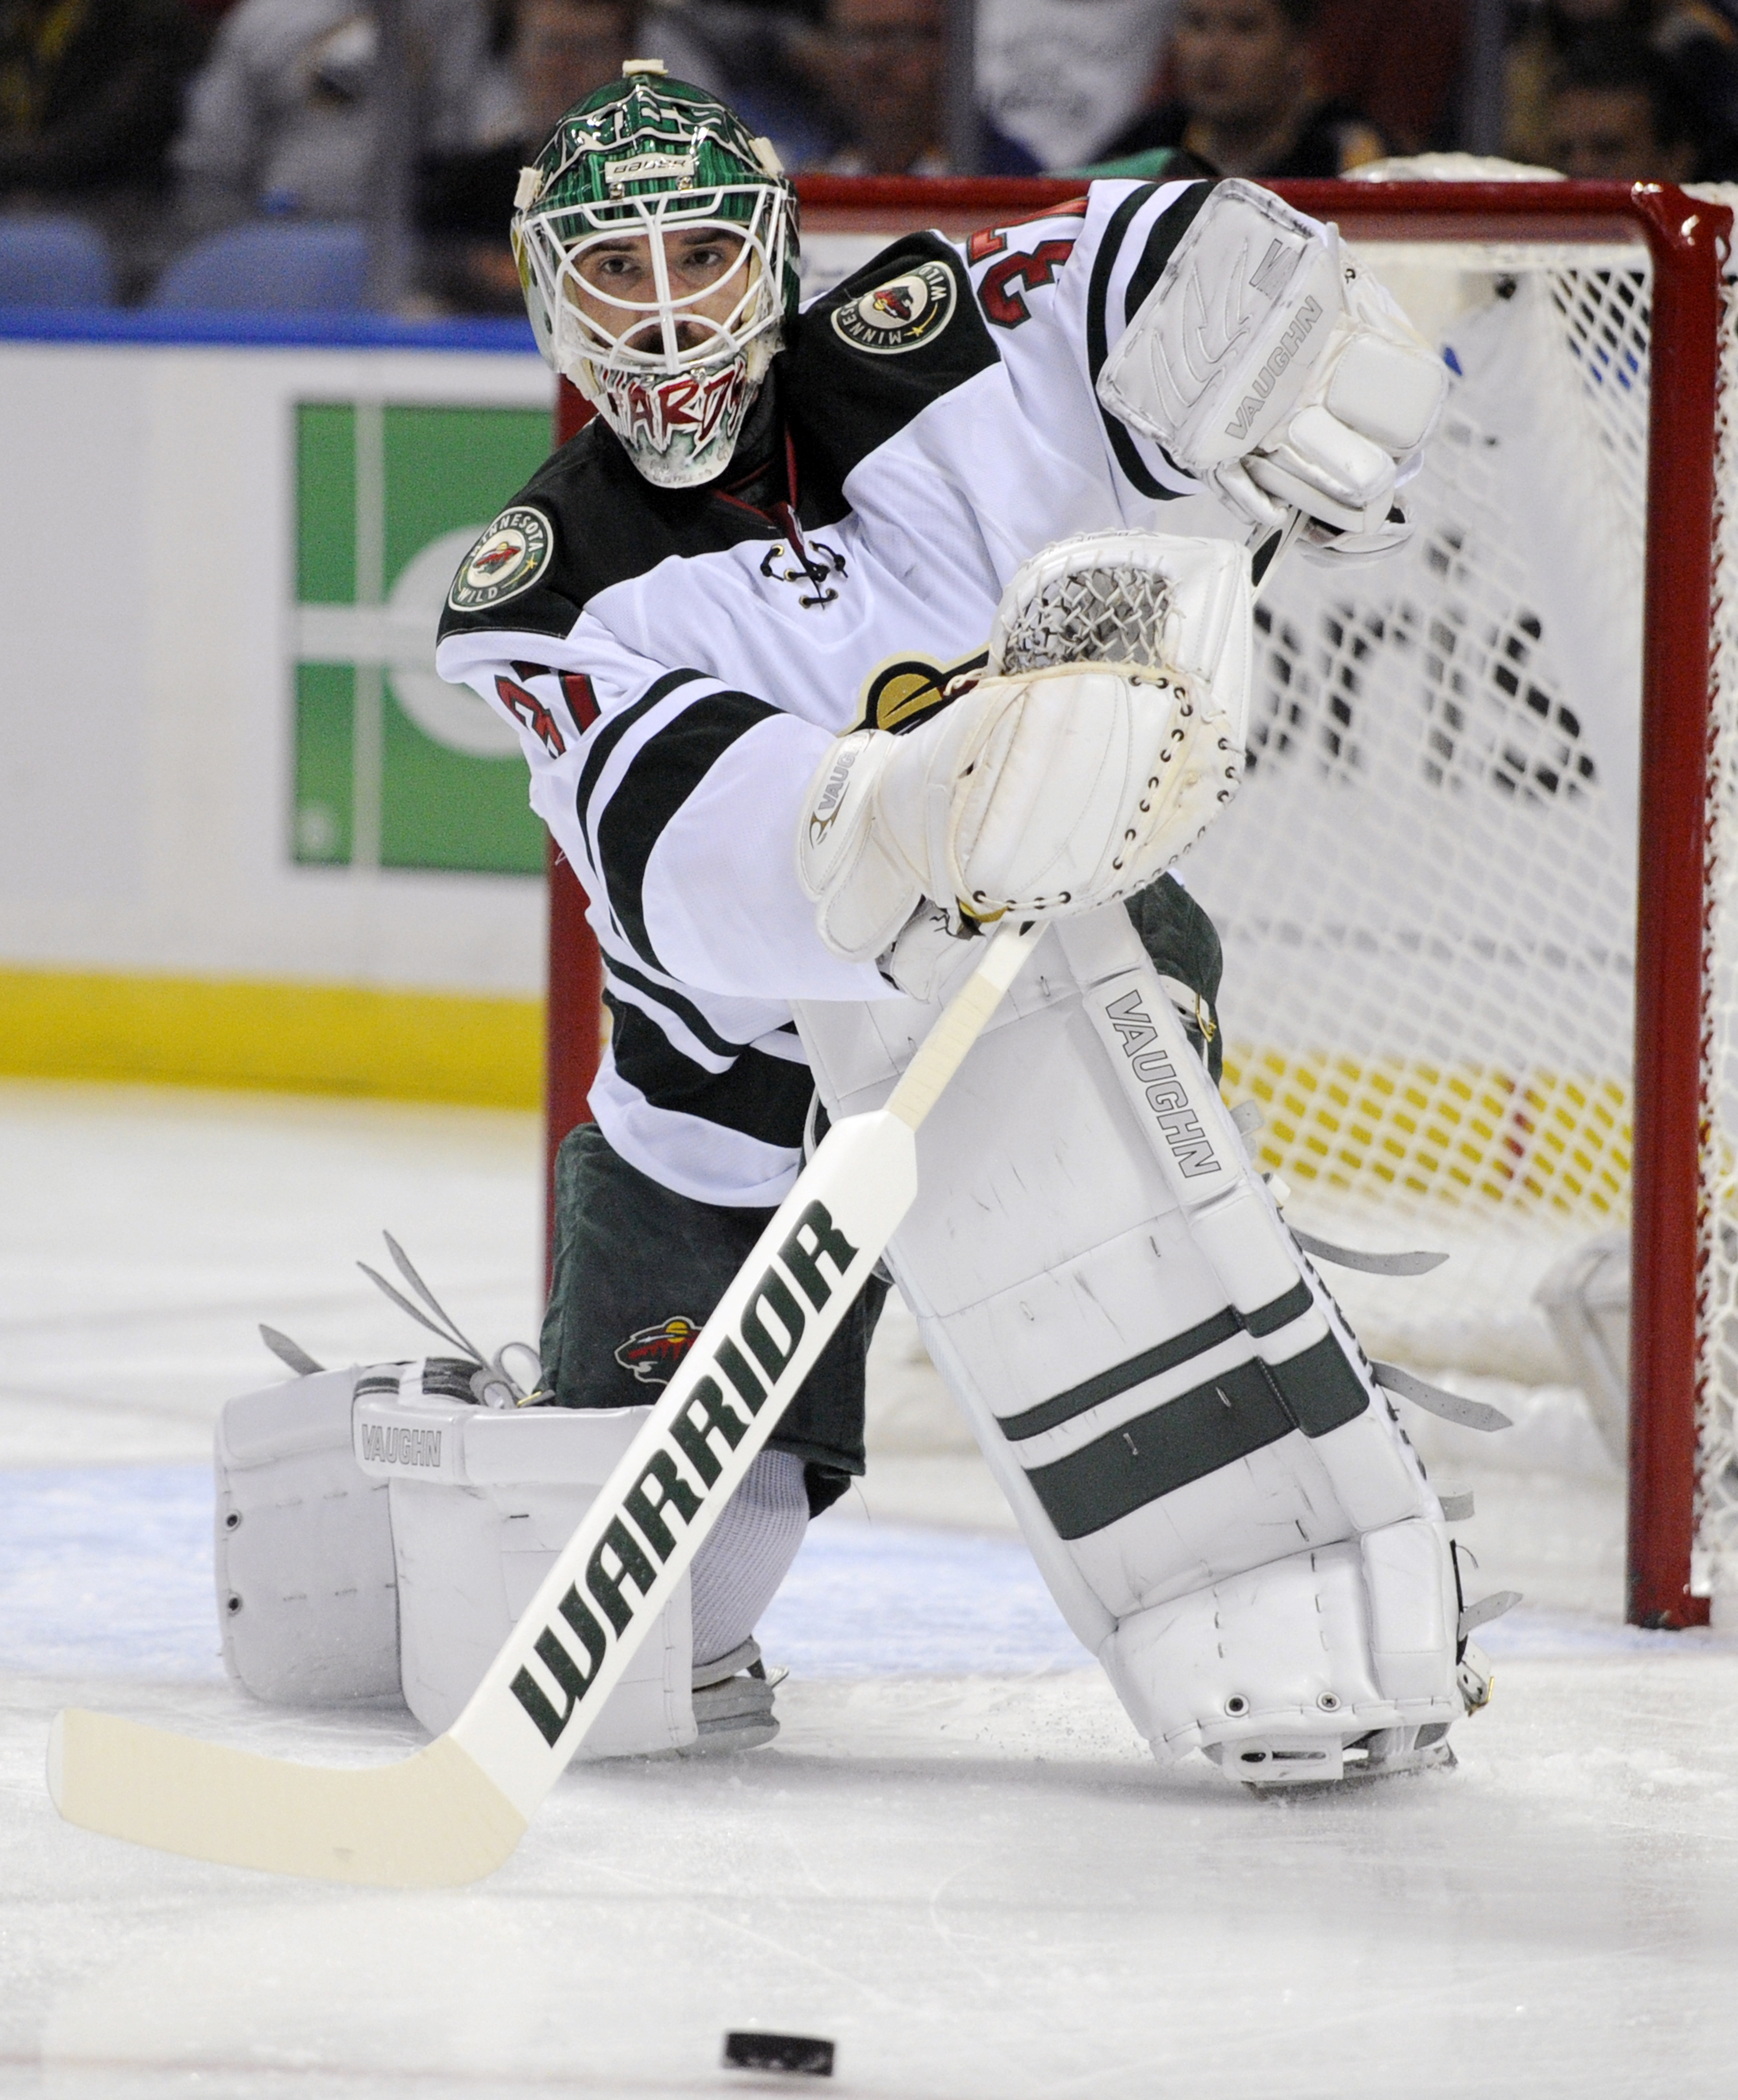 Josh Harding of the Wild is raising money to help fight multiple sclerosis. (Associated Press)